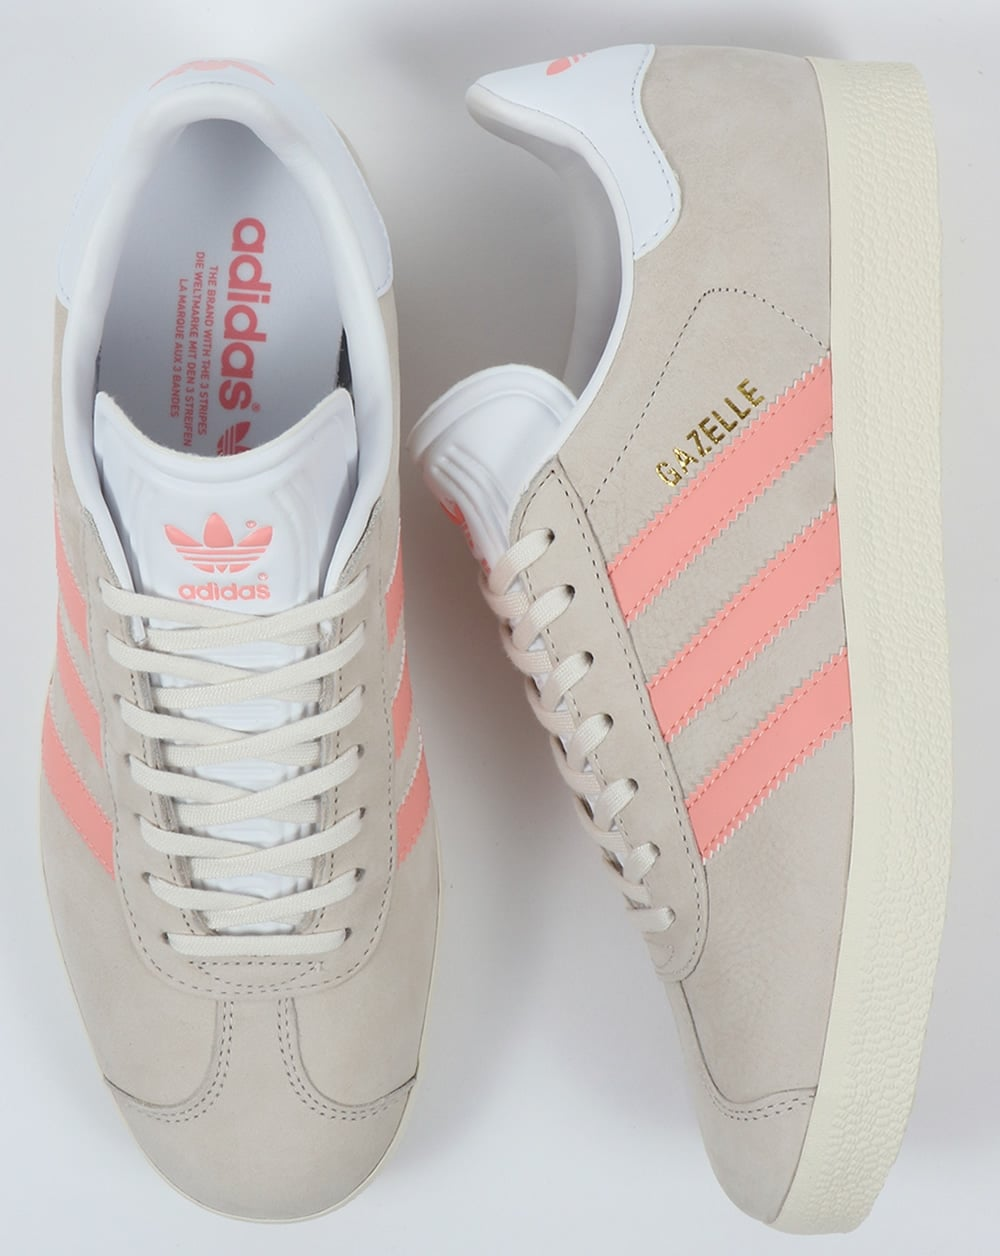 Pase para saber evidencia dolor de muelas  Adidas Gazelle Trainers Chalk White/Light  Pink,originals,shoes,womens,sneaker